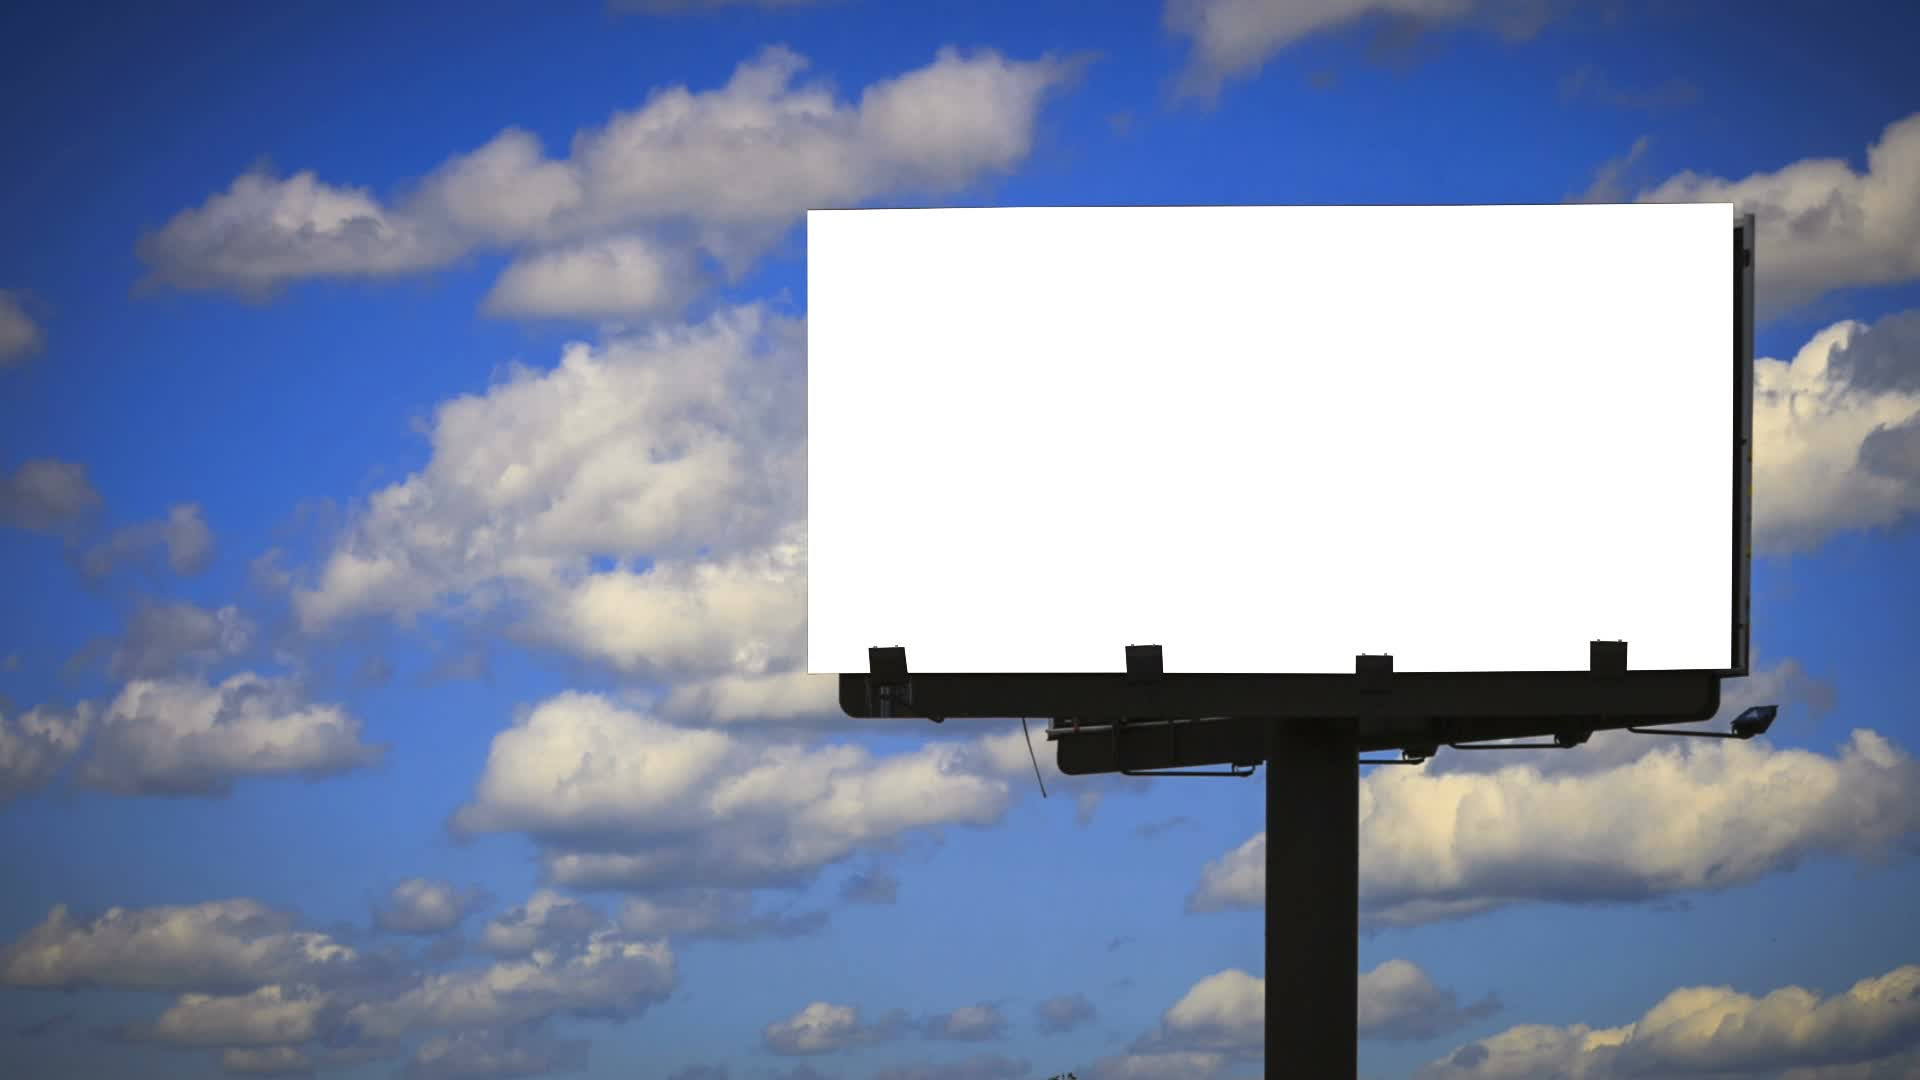 Blank Billboard with Cloud Time lapse ~ Video Clip #23167872